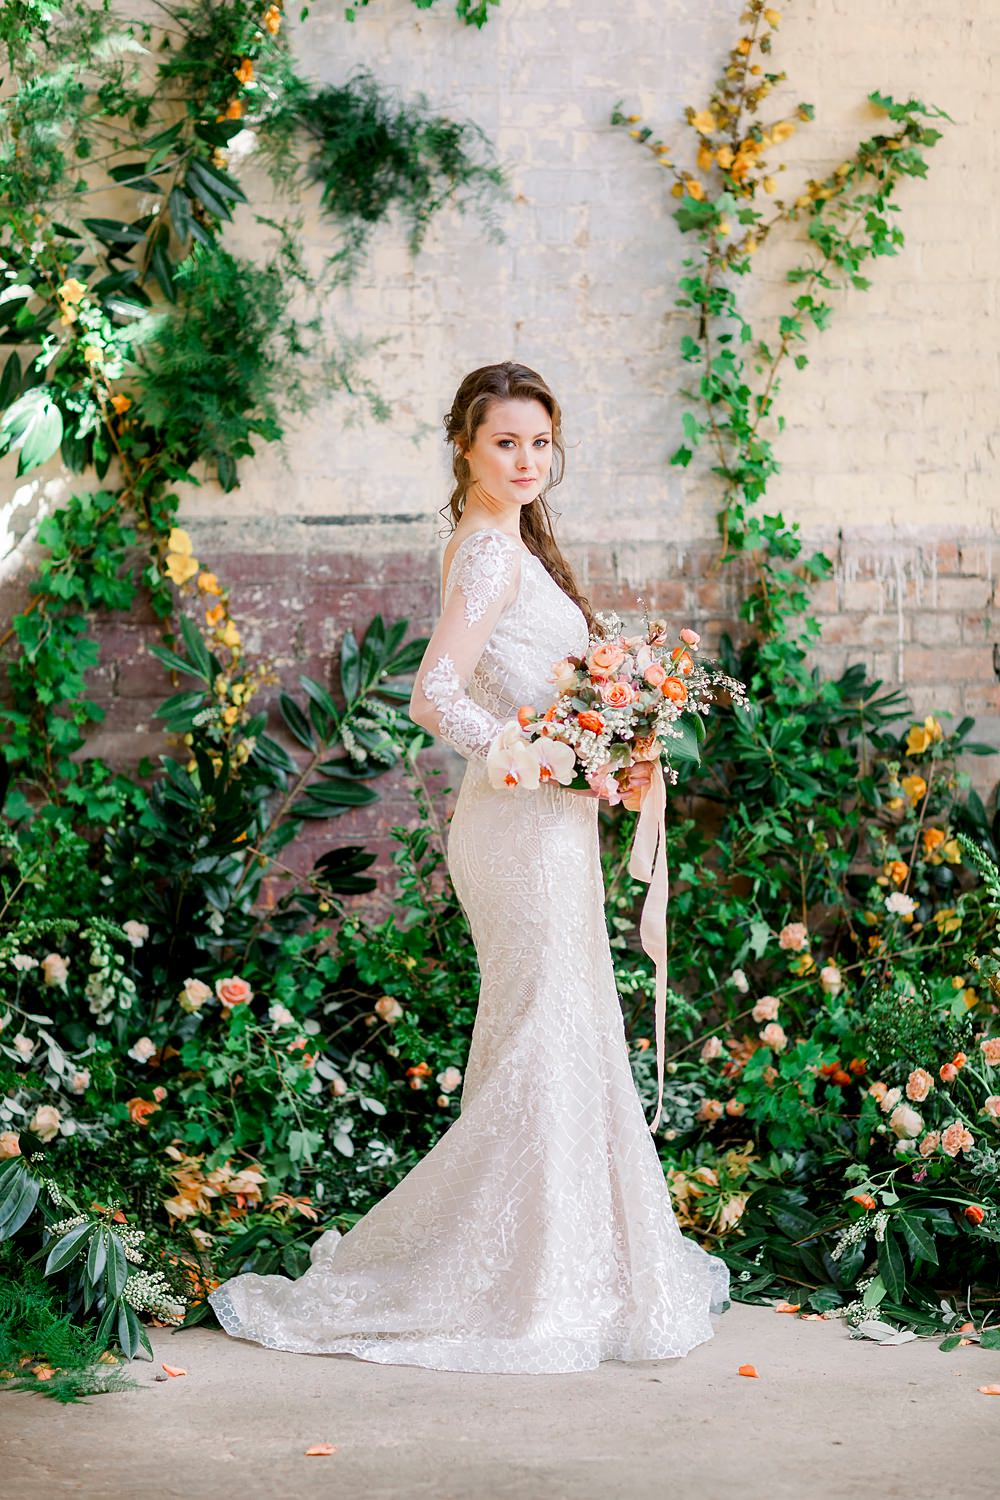 Dress Gown Bride Bridal Stelfox Bride Lace Long Sleeves Fit Flare Natural Boho Industrial Wedding Ideas Jo Bradbury Photography